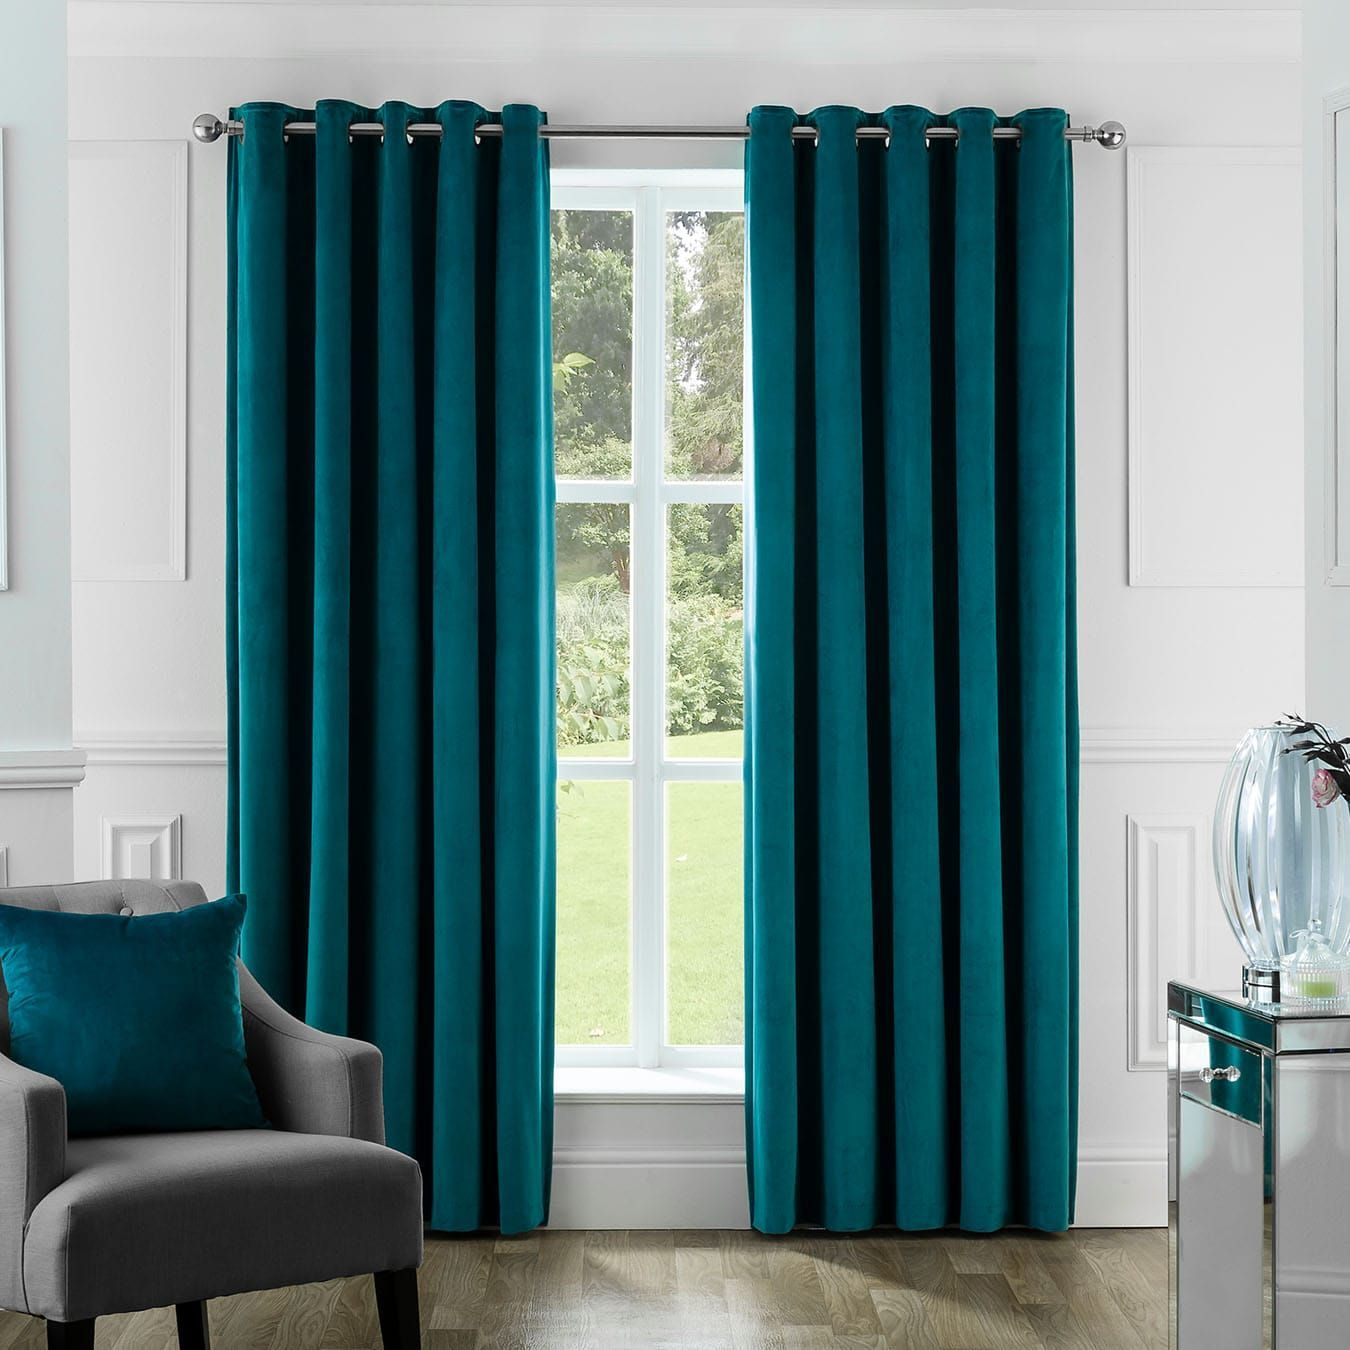 We Don't Price Extra For #curtains And Blinds Even